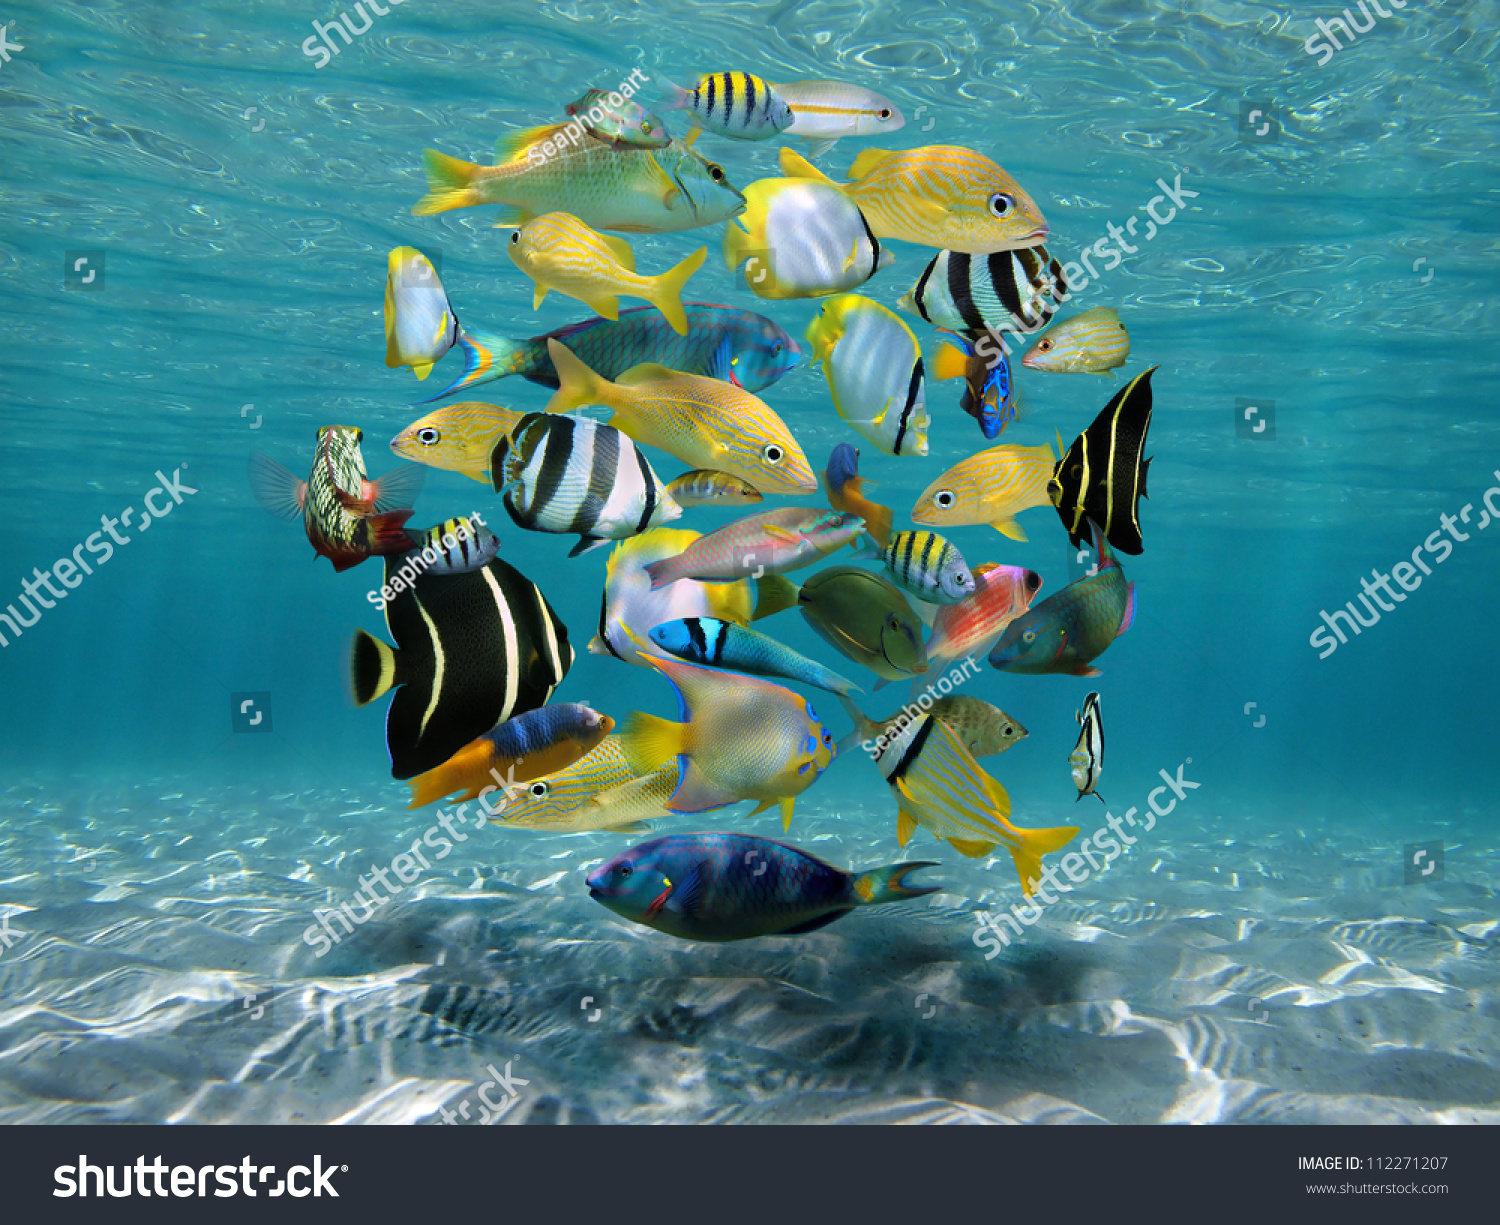 Sea Bottom Of The Sea Fish Seabed Sea: Shoal Of Colorful Tropical Fish Underwater Sea Between